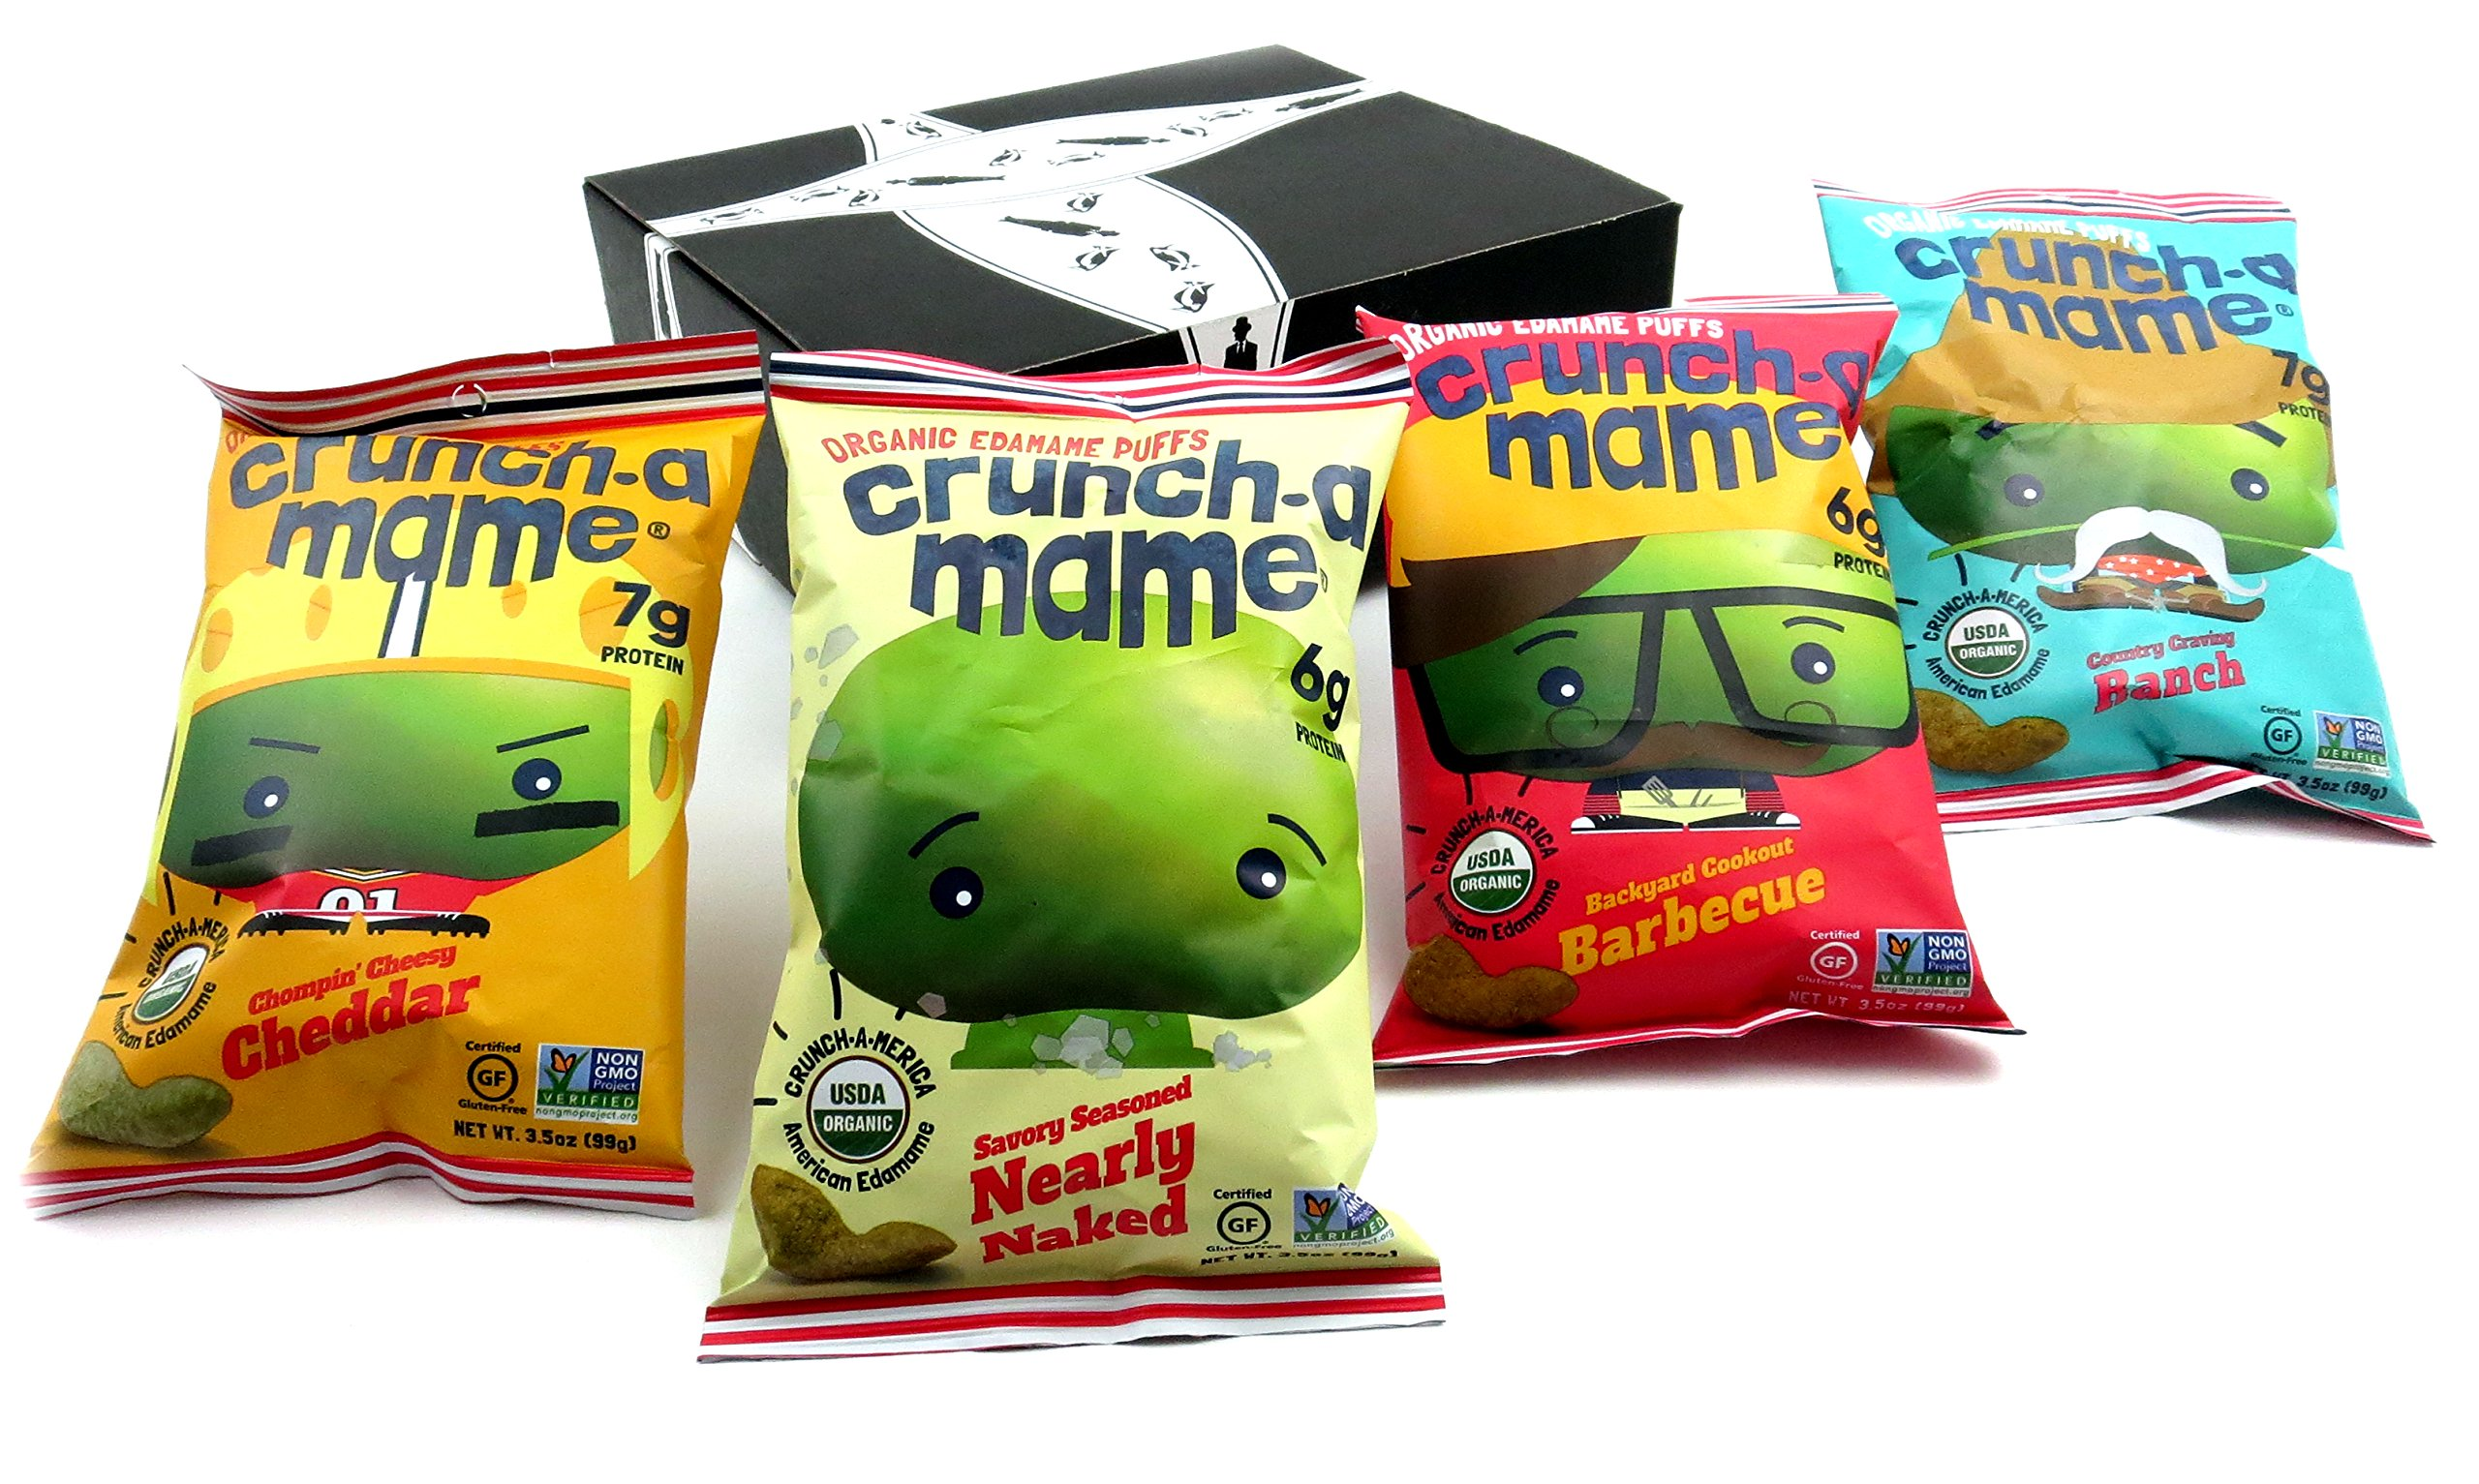 Crunch-a-mame Organic Edamame Puffs 4-Flavor Variety: One 3.5 oz Bag Each of Cheddar, Barbeque, Ranch, and Nearly Naked in a BlackTie Box (4 Items Total)